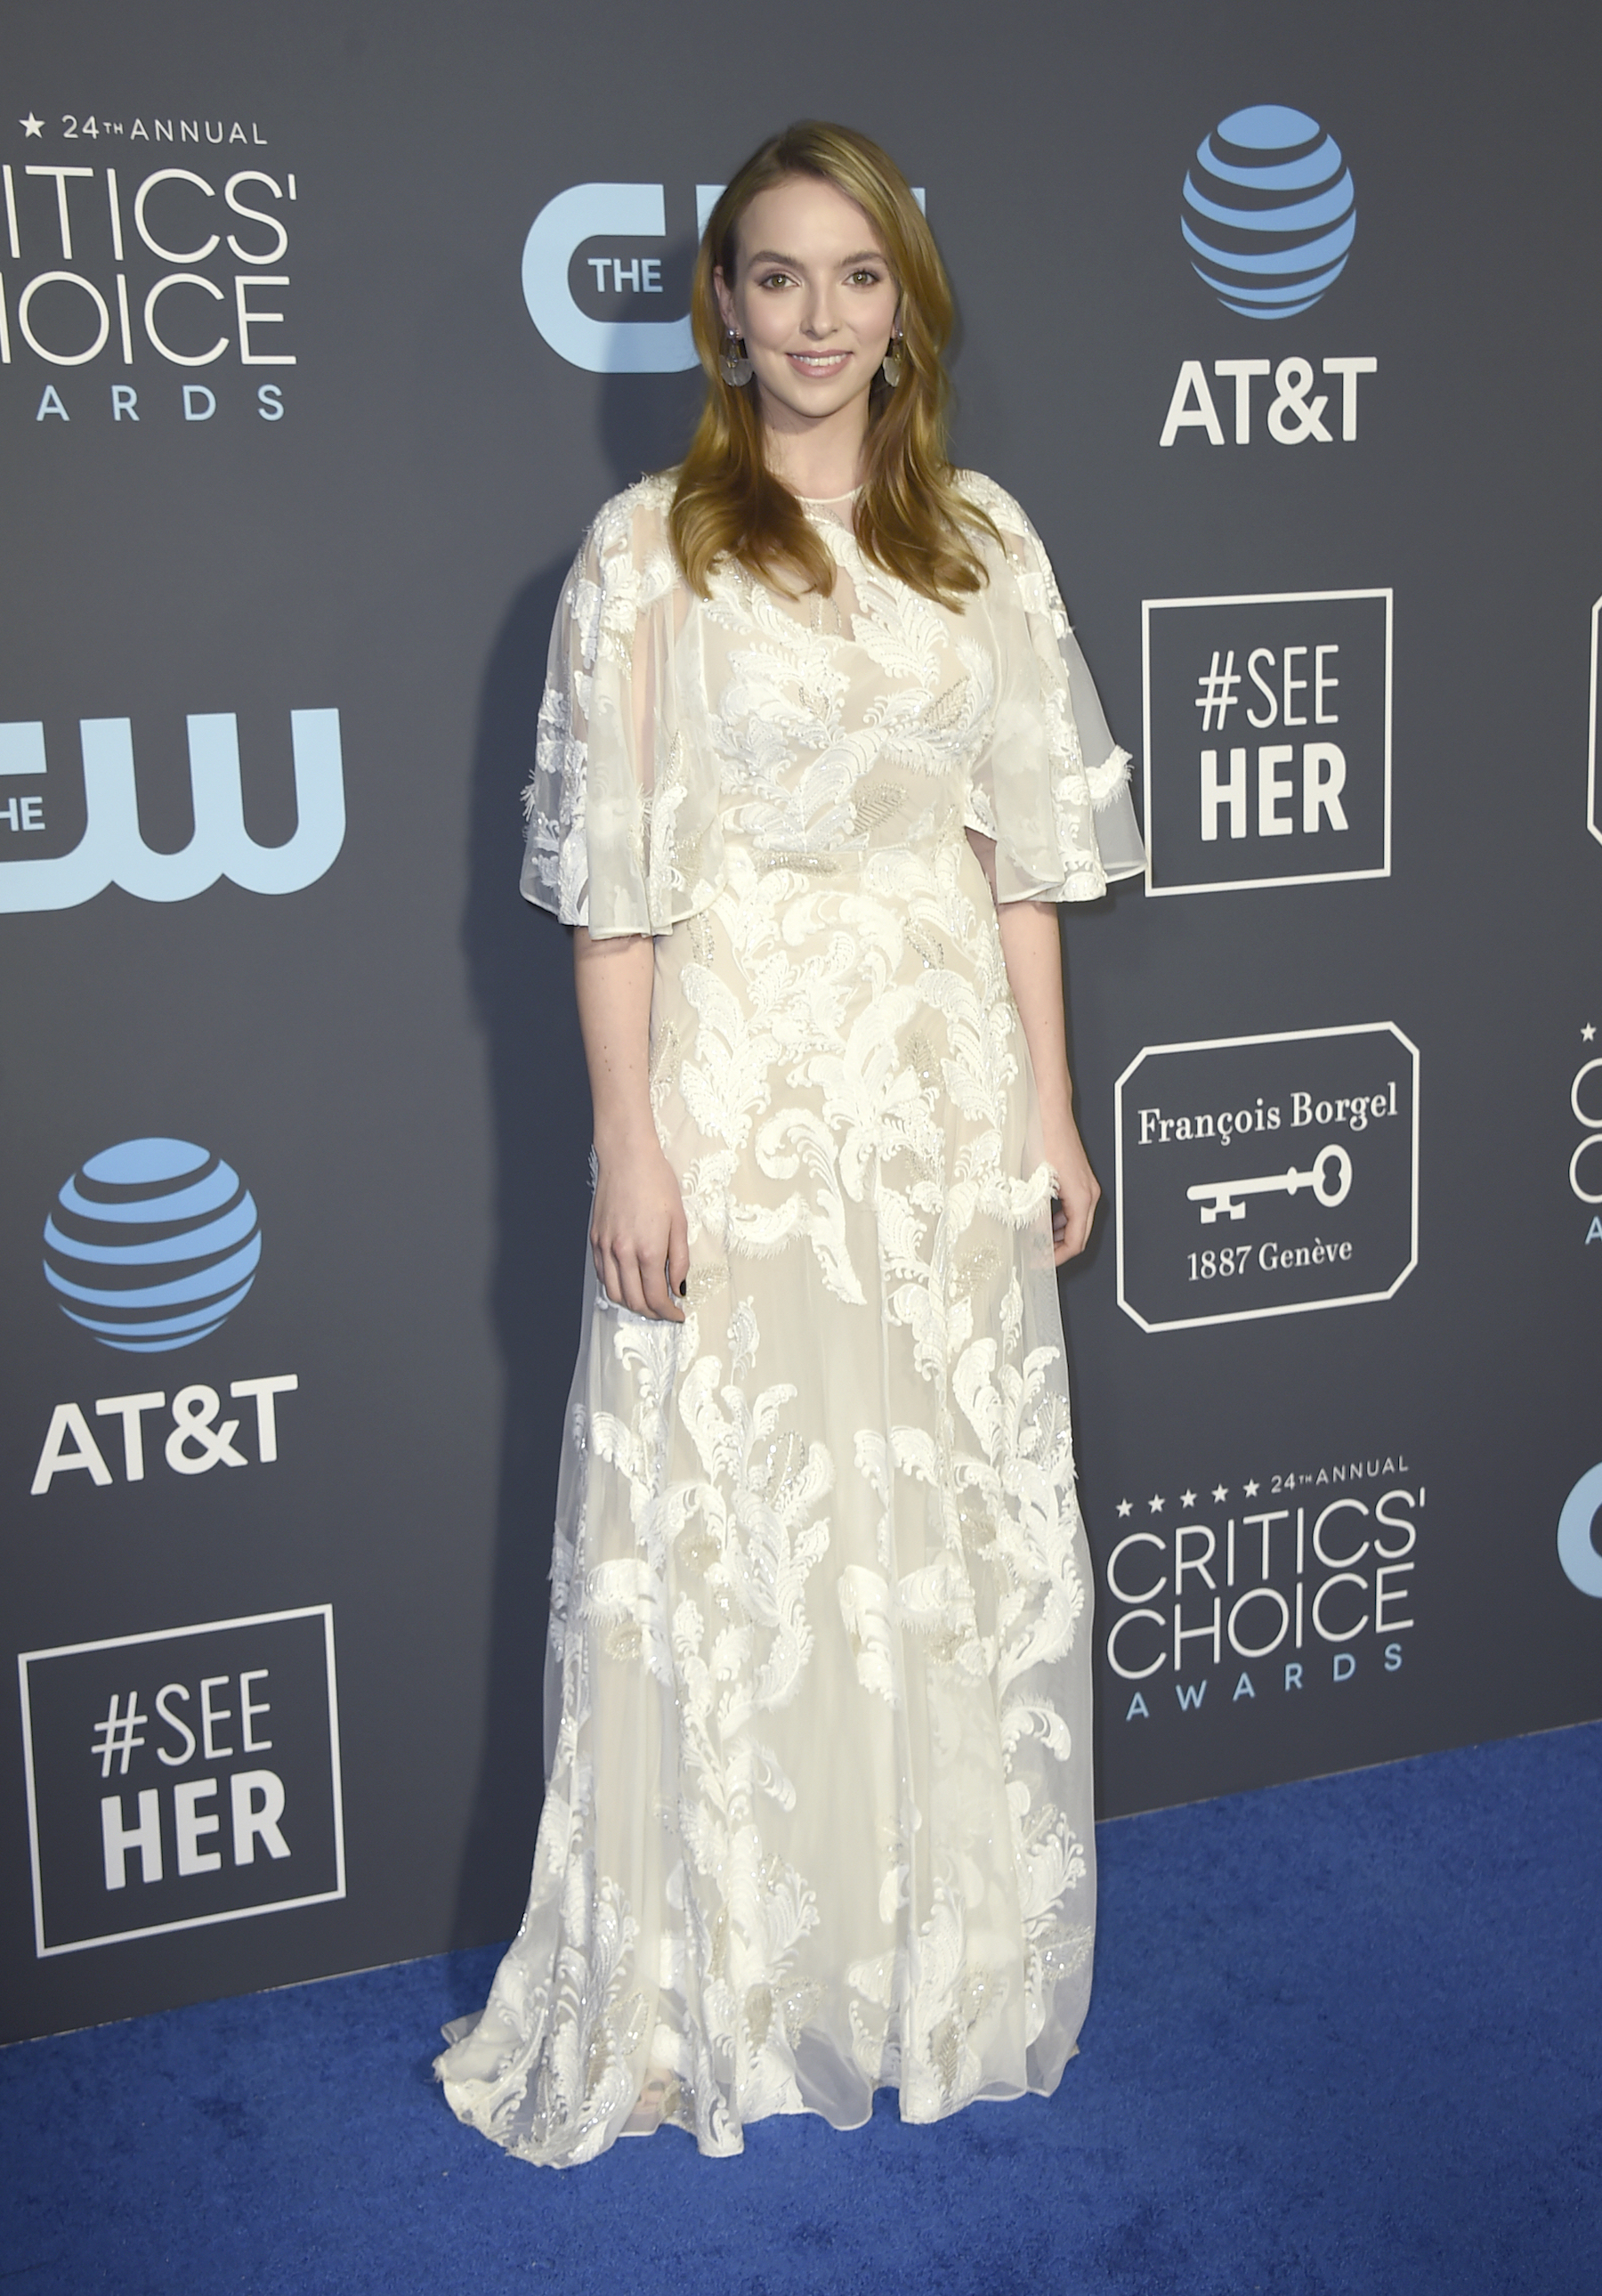 <div class='meta'><div class='origin-logo' data-origin='AP'></div><span class='caption-text' data-credit='Jordan Strauss/Invision/AP'>Jodie Comer arrives at the 24th annual Critics' Choice Awards on Sunday, Jan. 13, 2019, at the Barker Hangar in Santa Monica, Calif.</span></div>